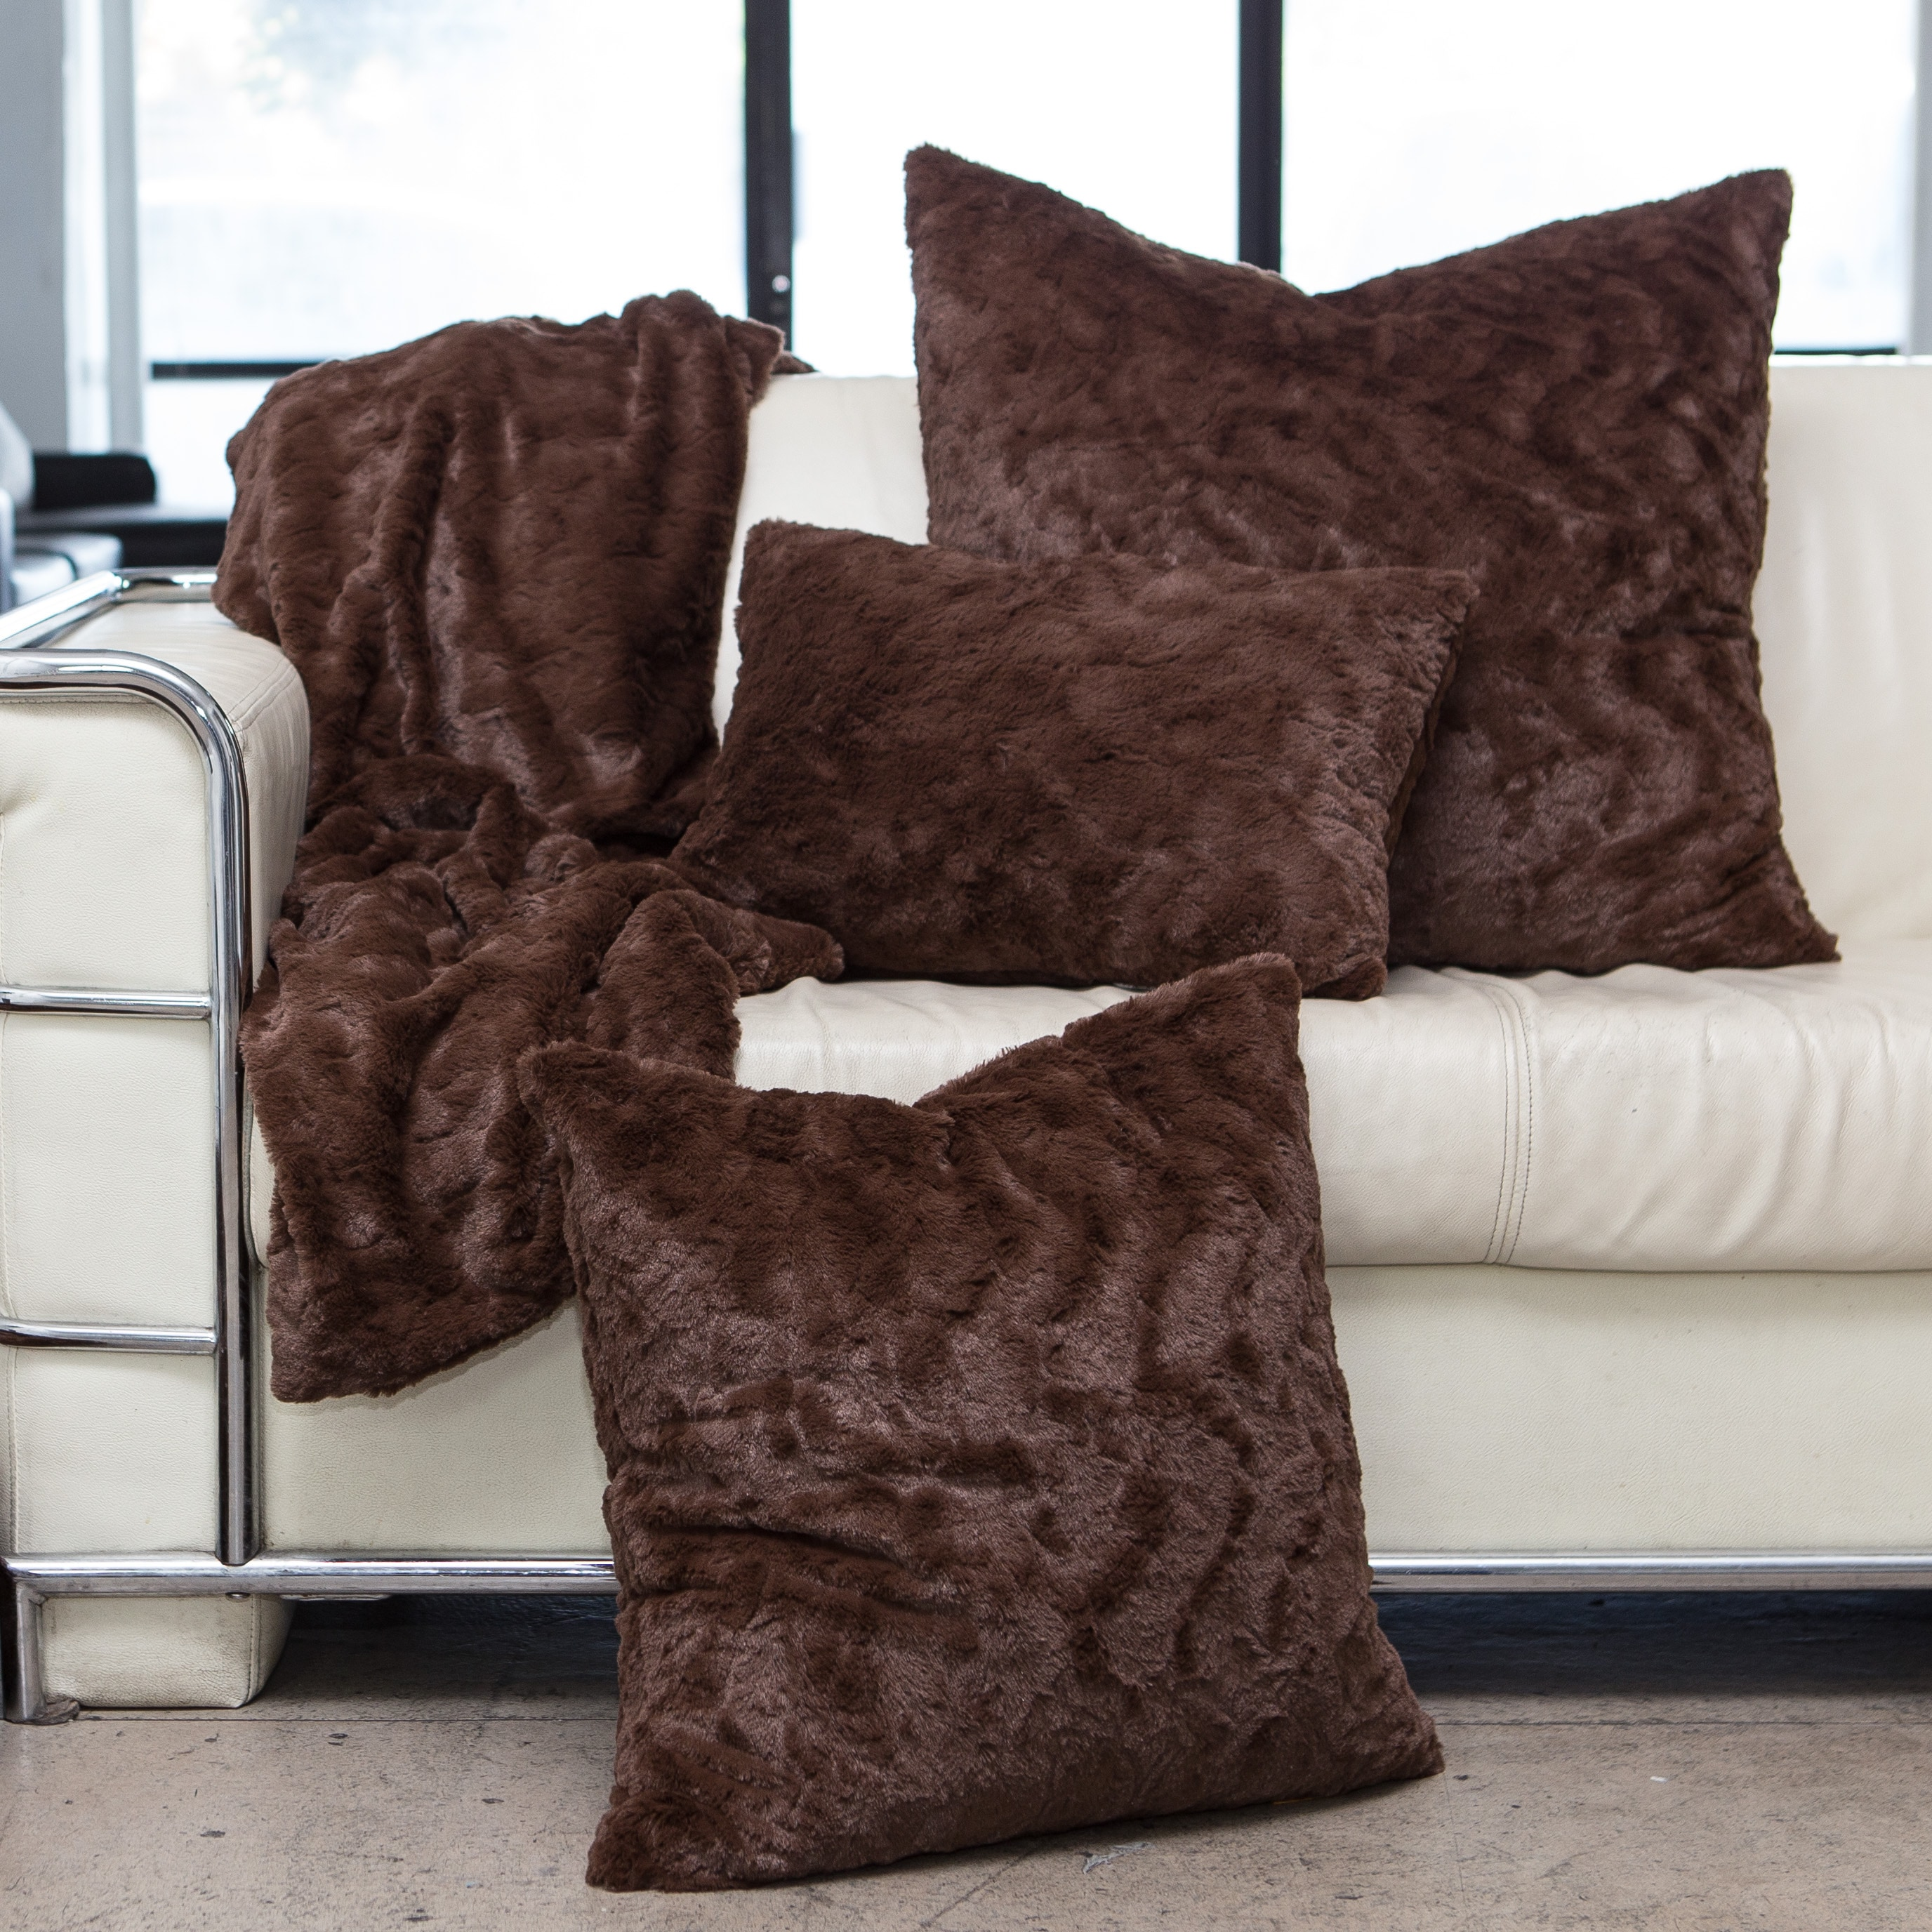 Shop Chateau By Sheri Luxurious Faux Fur Pillows Throw Andor Set